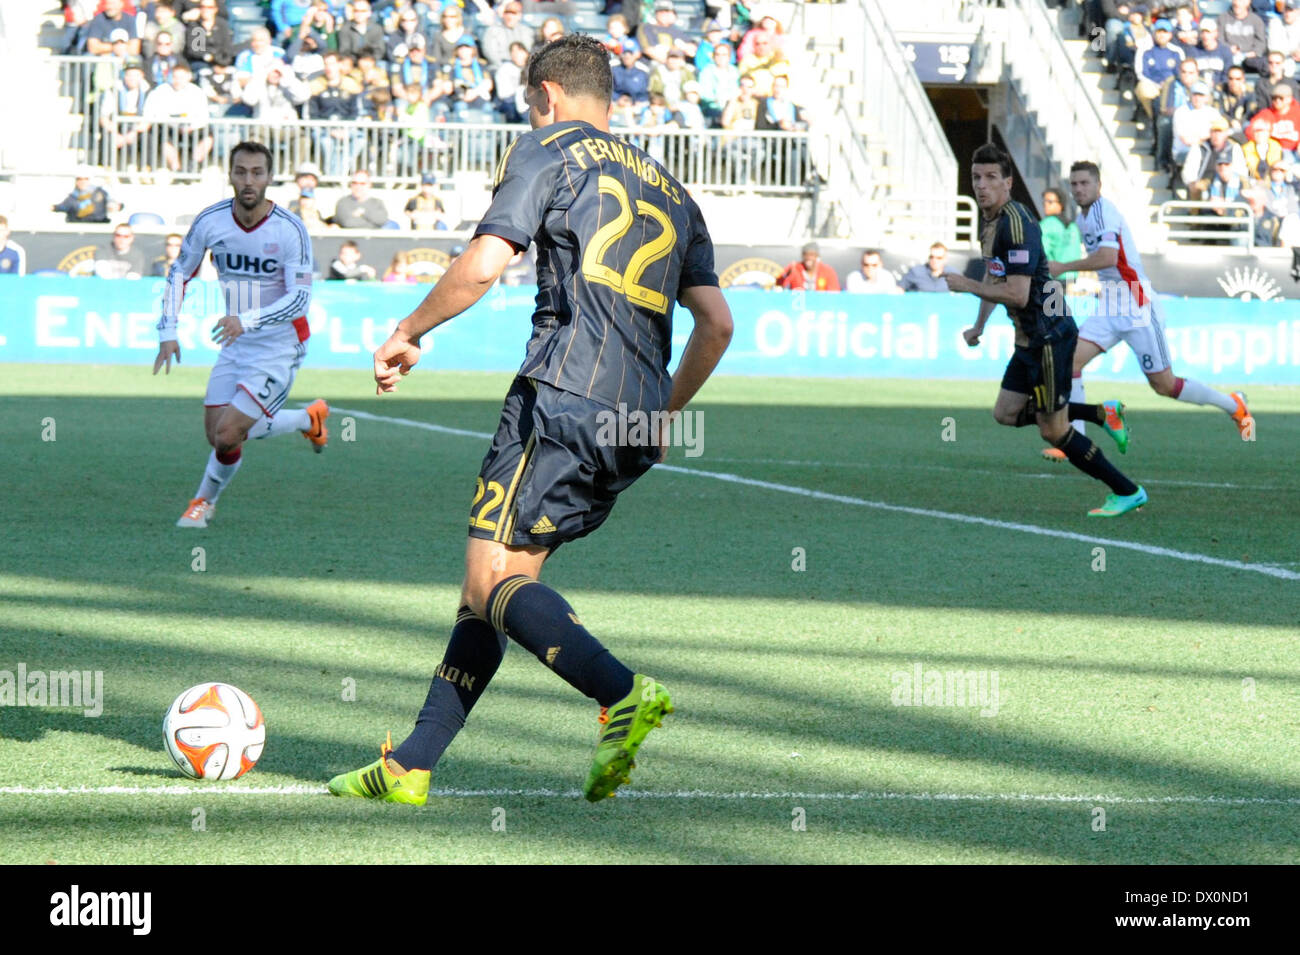 Brazilian international Leo Fernandes sets up frenchman Sebastian LeToux goal during a soccer / football match with the New England Revolution at Talen Energy Stadium in Chester PA United States of America during a sunny fall / autumn day outside of Philadelphia - Stock Image